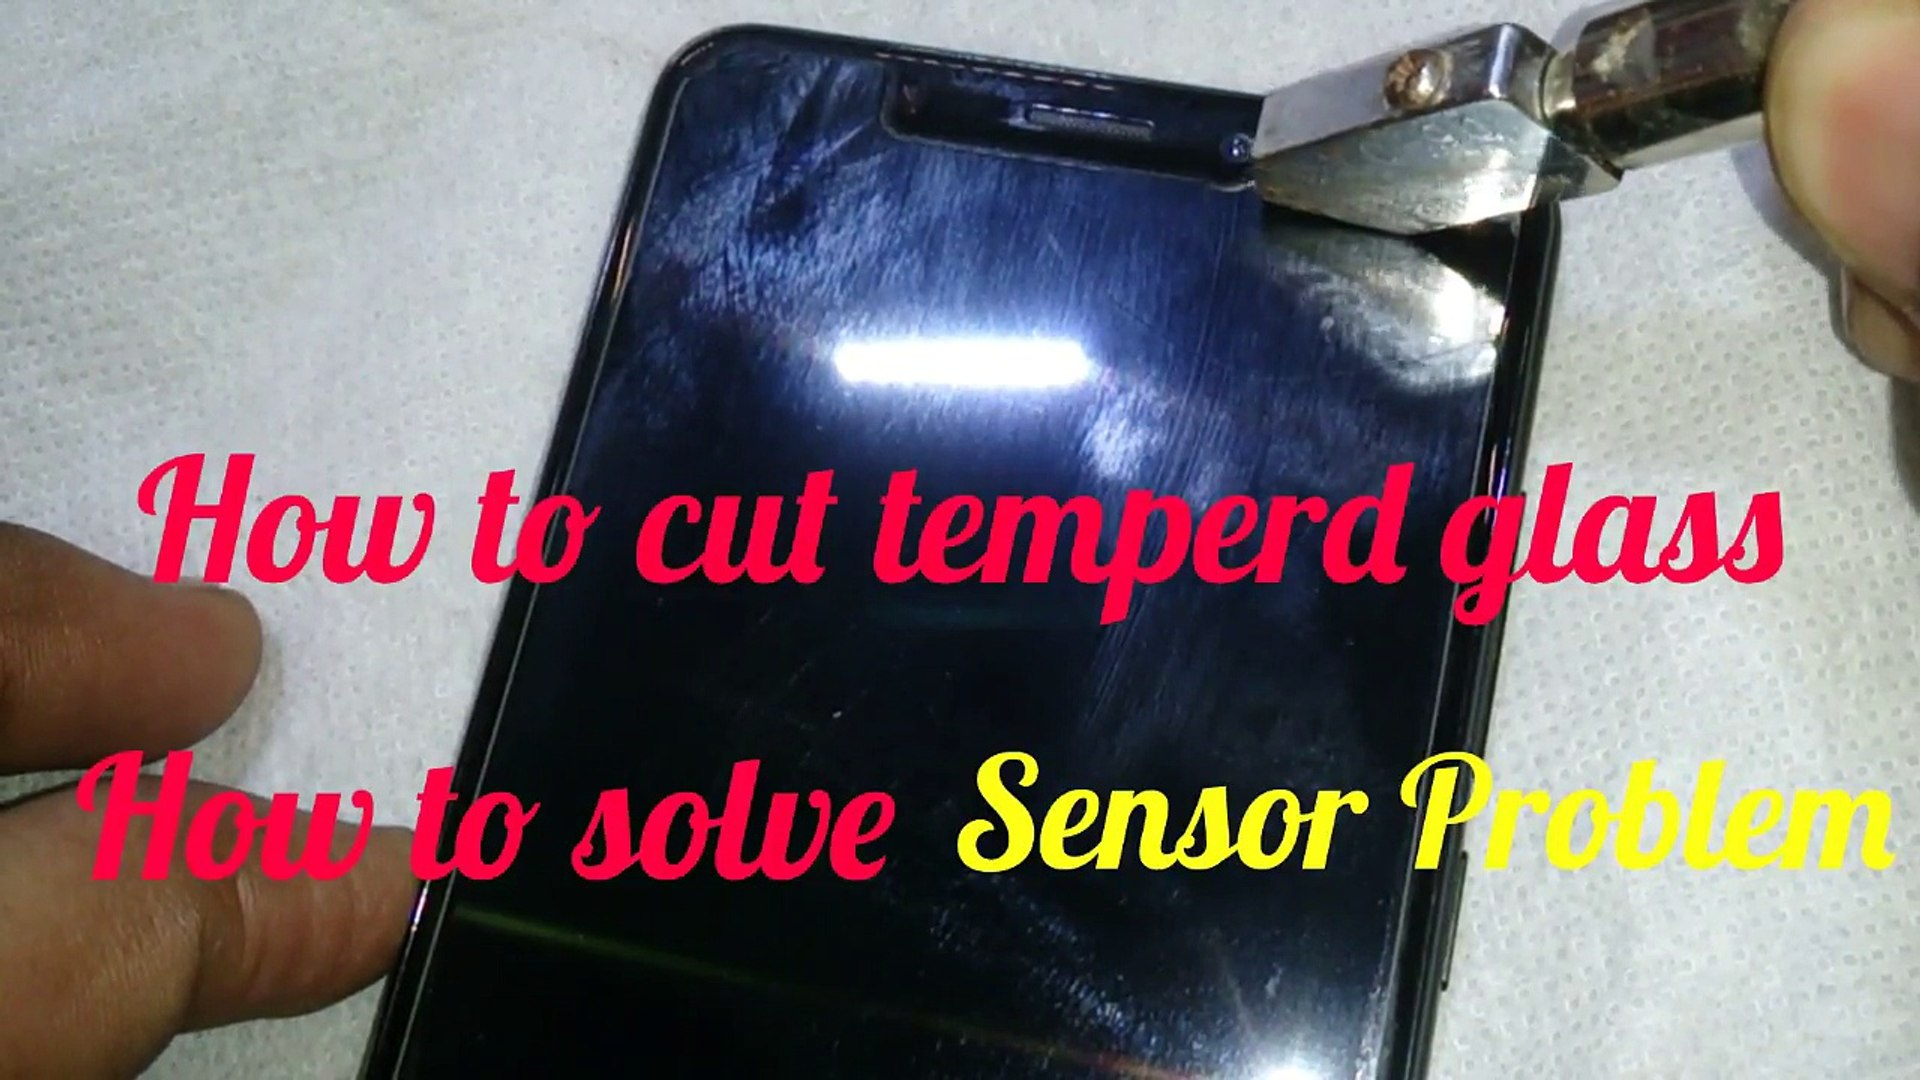 - How to - cut - temperd - glass - how to - solve - sensor - Problem- how to - fix - proximity - sen